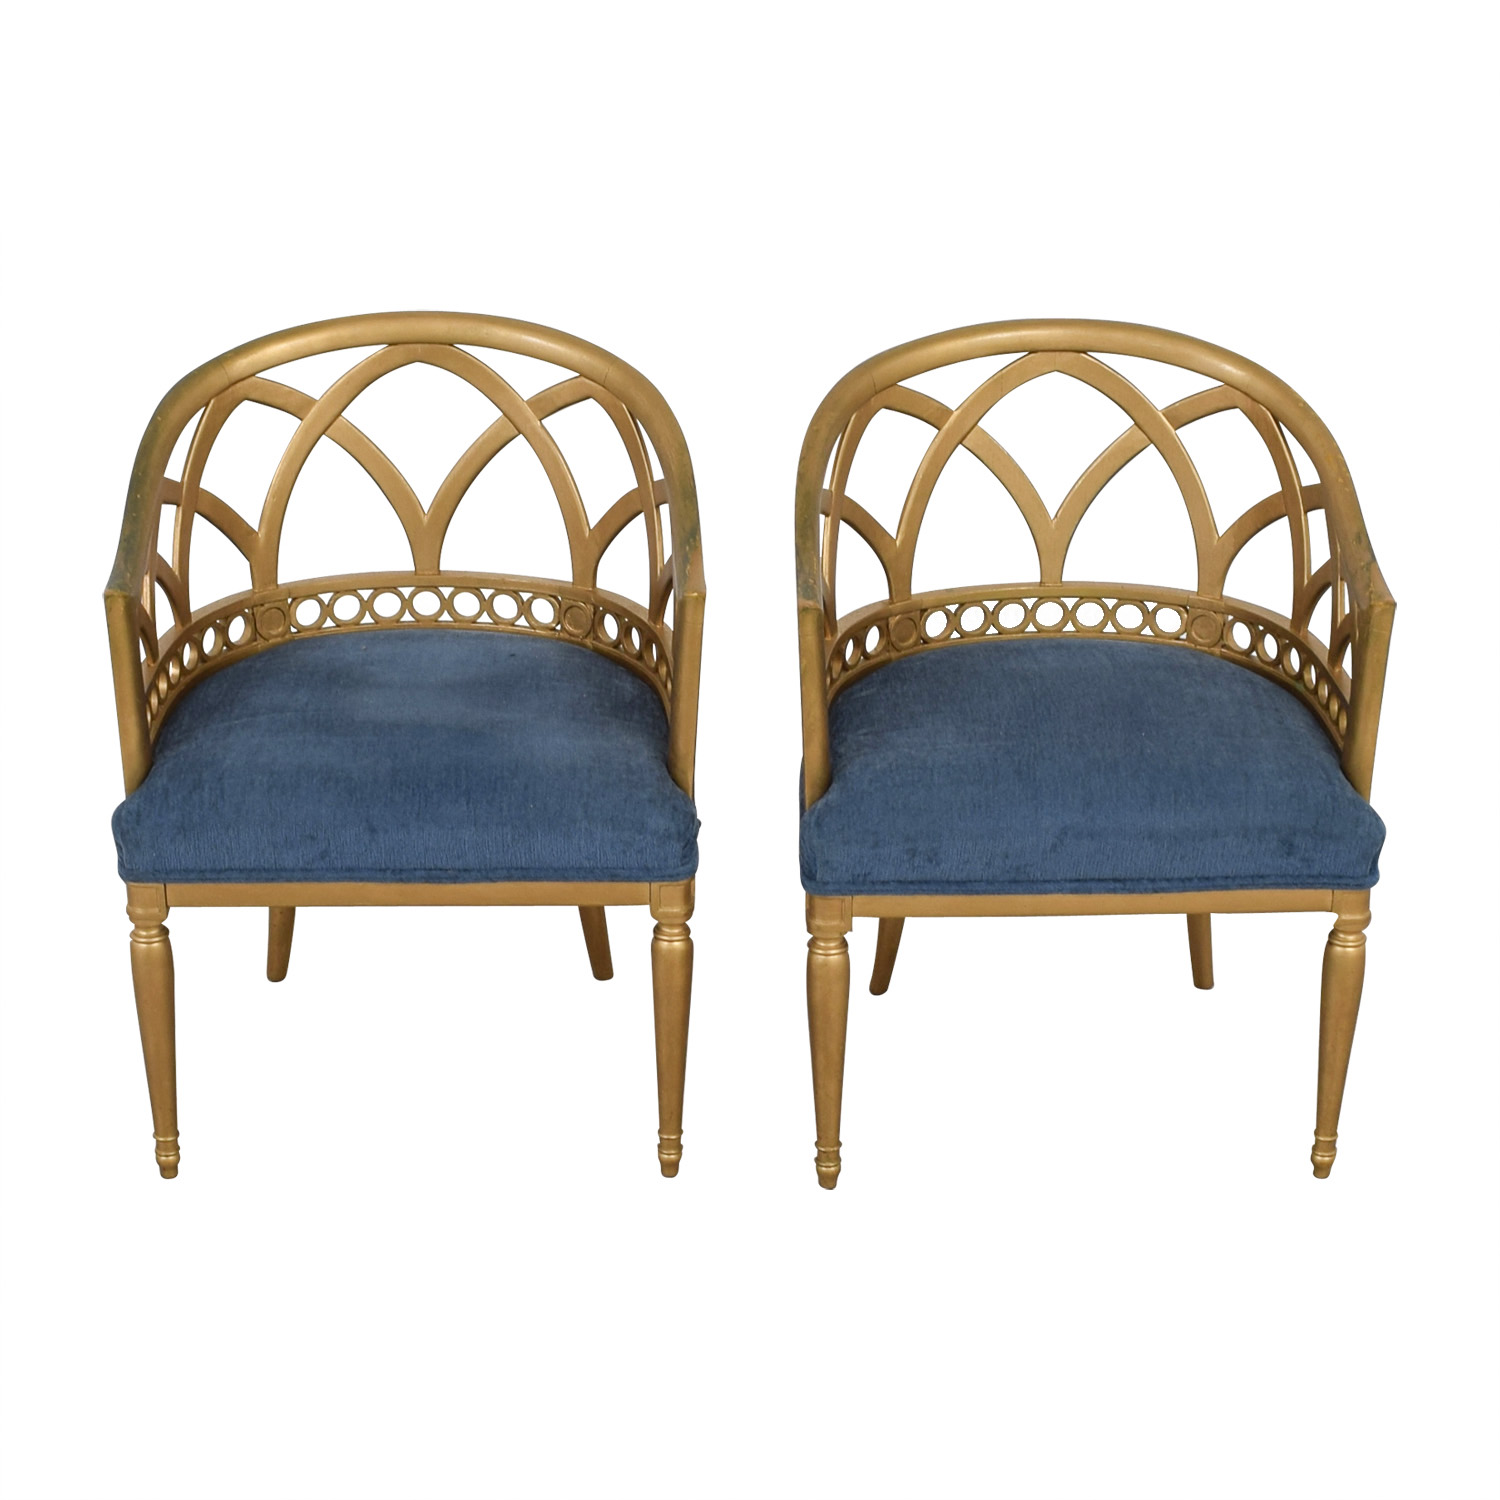 Regency Blue and Gold Accent Chairs coupon